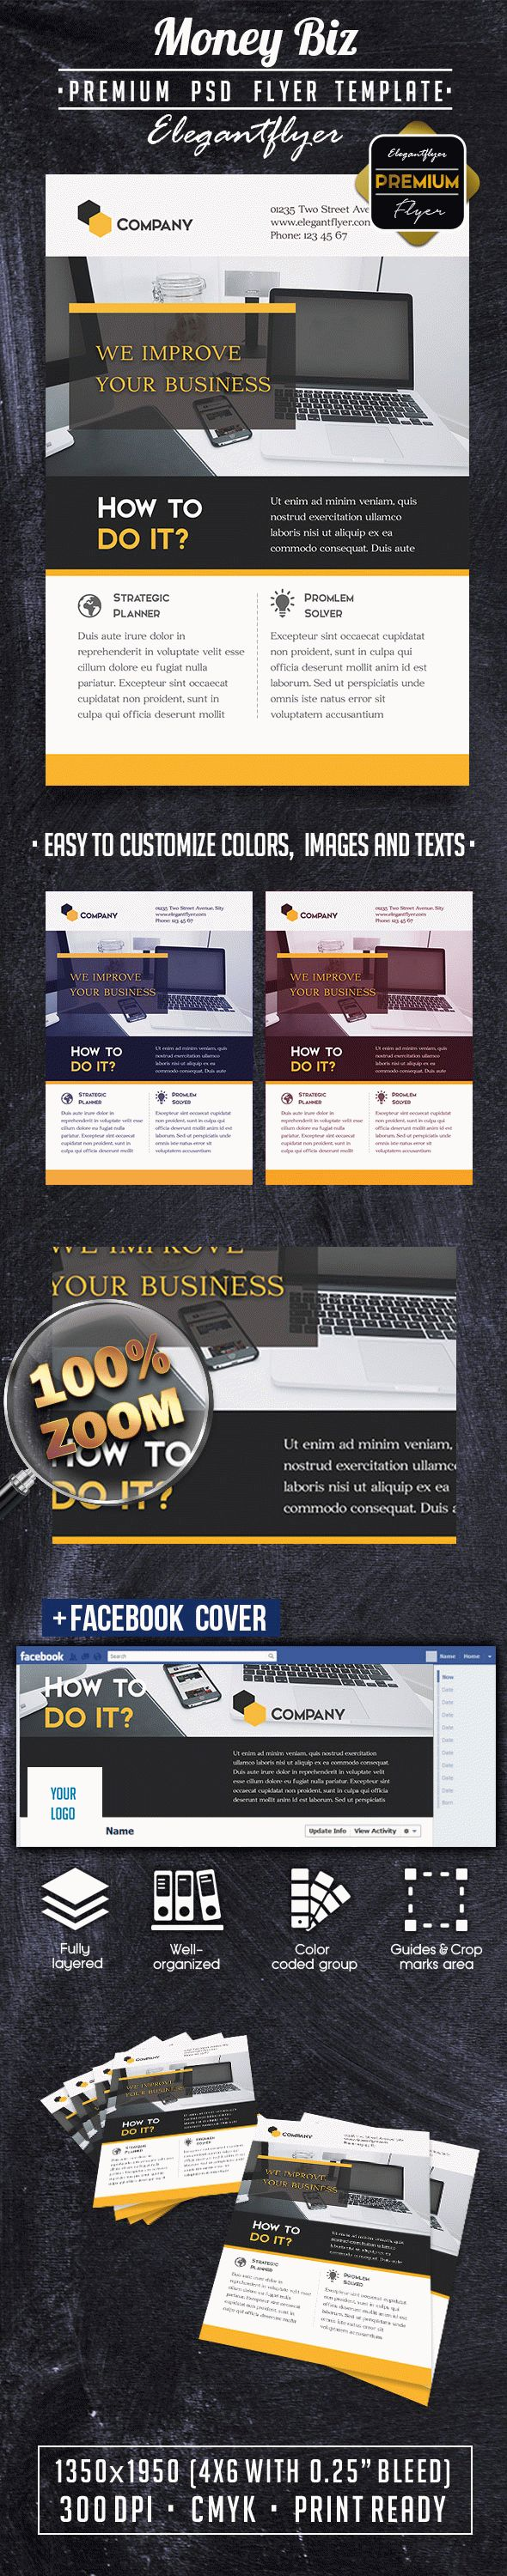 MoneyBiz PREMIUM Flyer PSD Template + Facebook Cover